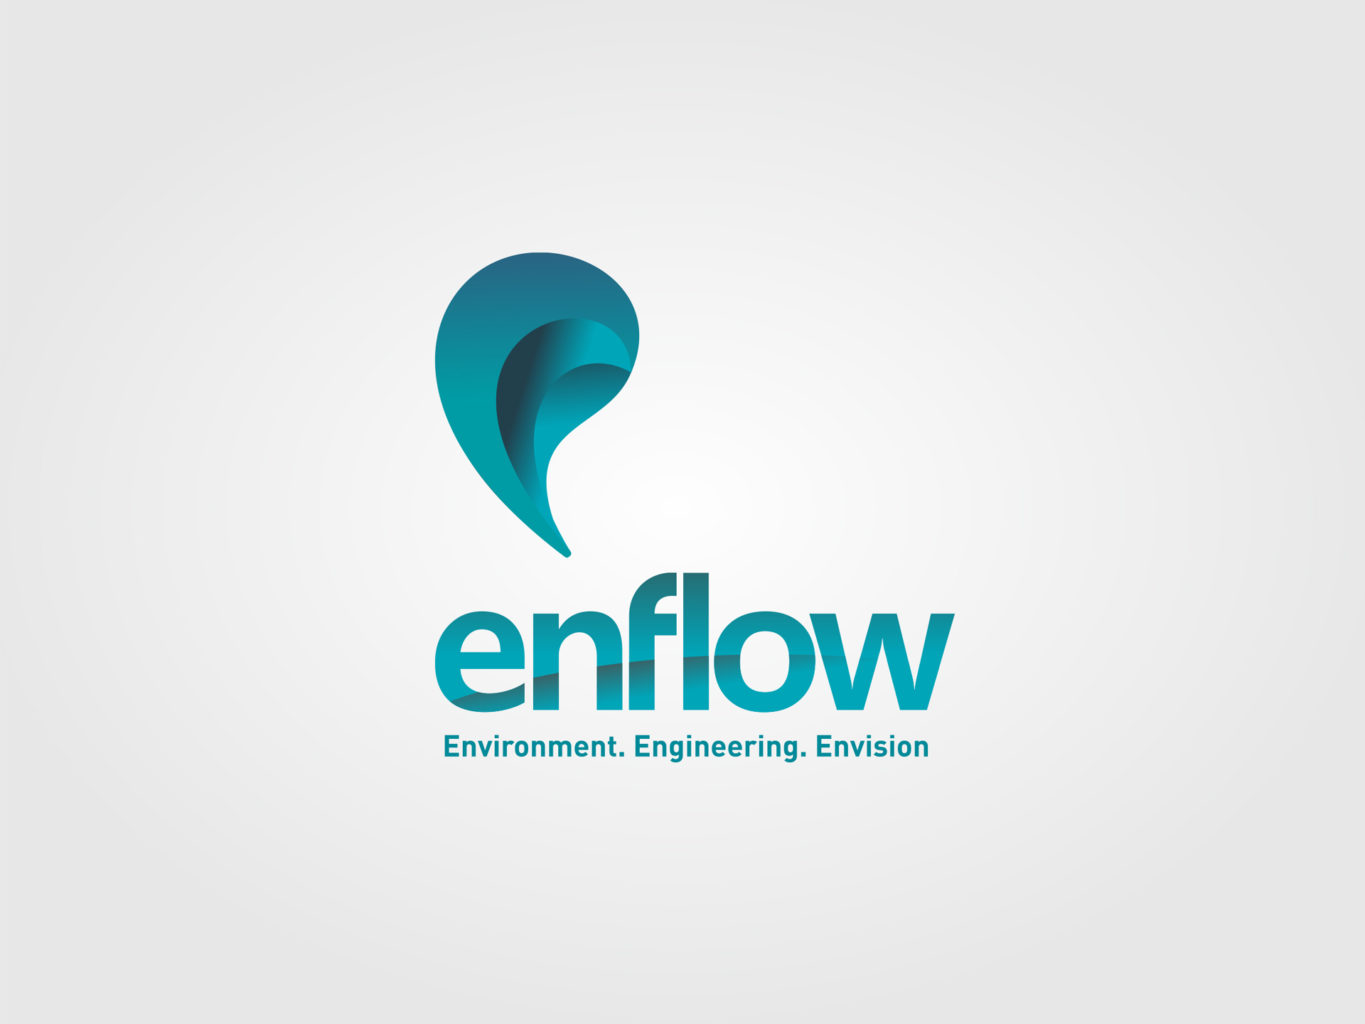 EnFlow / Water & Waste Management Company logo design by fiftyeggz